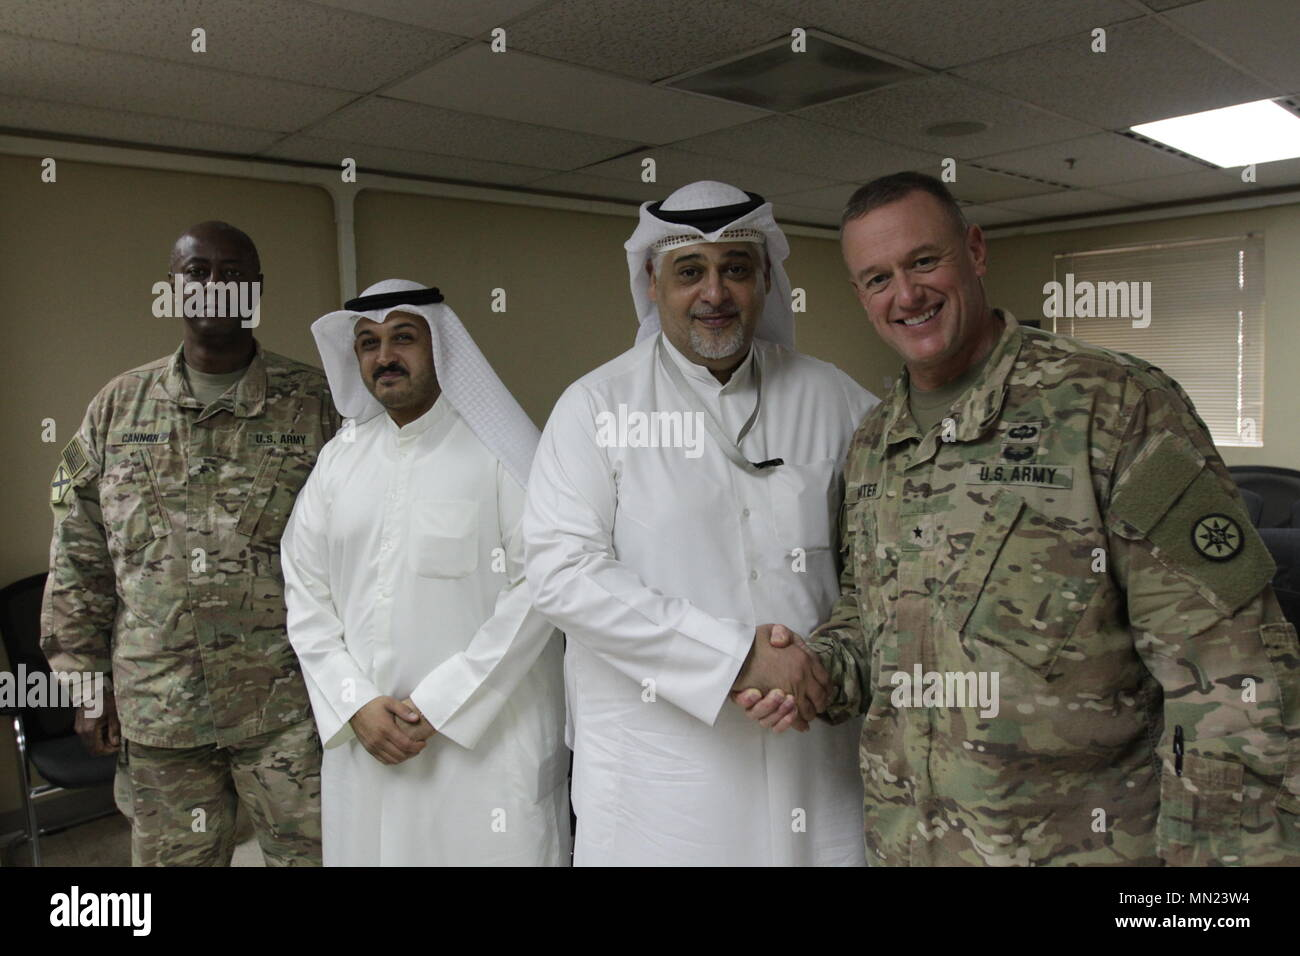 Brig. Gen. Robert D. Harter, Commanding General of the 316th Sustainment Command (Expeditionary), Deputy Commanding General of the 1st Sustainment Command (Theater), right, meets with Mr. Osama K. Al-Shami, Assistant Head of the Director and Deputy Office Head Kuwaiti Customs and US Military Liaison, left, during a meeting regarding maintenance and improvement of the facilities at Kubhari Crossing (K Crossing), a major Ground Logistical Operation Corridor between Kuwait and Iraq, on Aug. 14, 2017. (U.S. Army photo by Sgt. Christopher Bigelow) - Stock Image